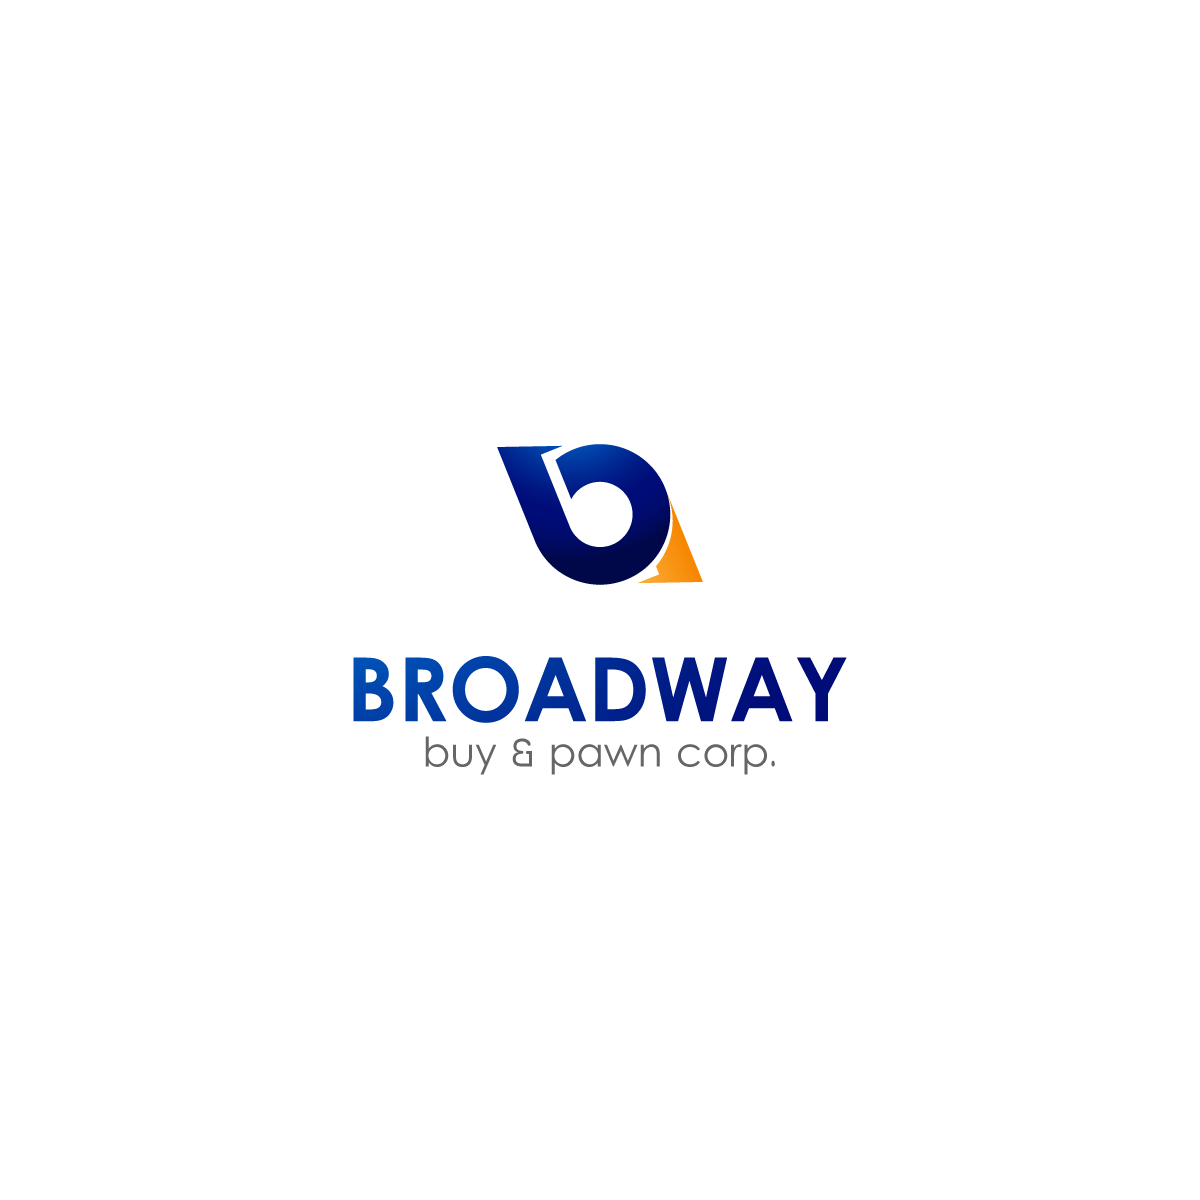 Logo Design by zesthar - Entry No. 63 in the Logo Design Contest Unique Logo Design Wanted for Broadway Buy & Pawn corp or BNP for short.